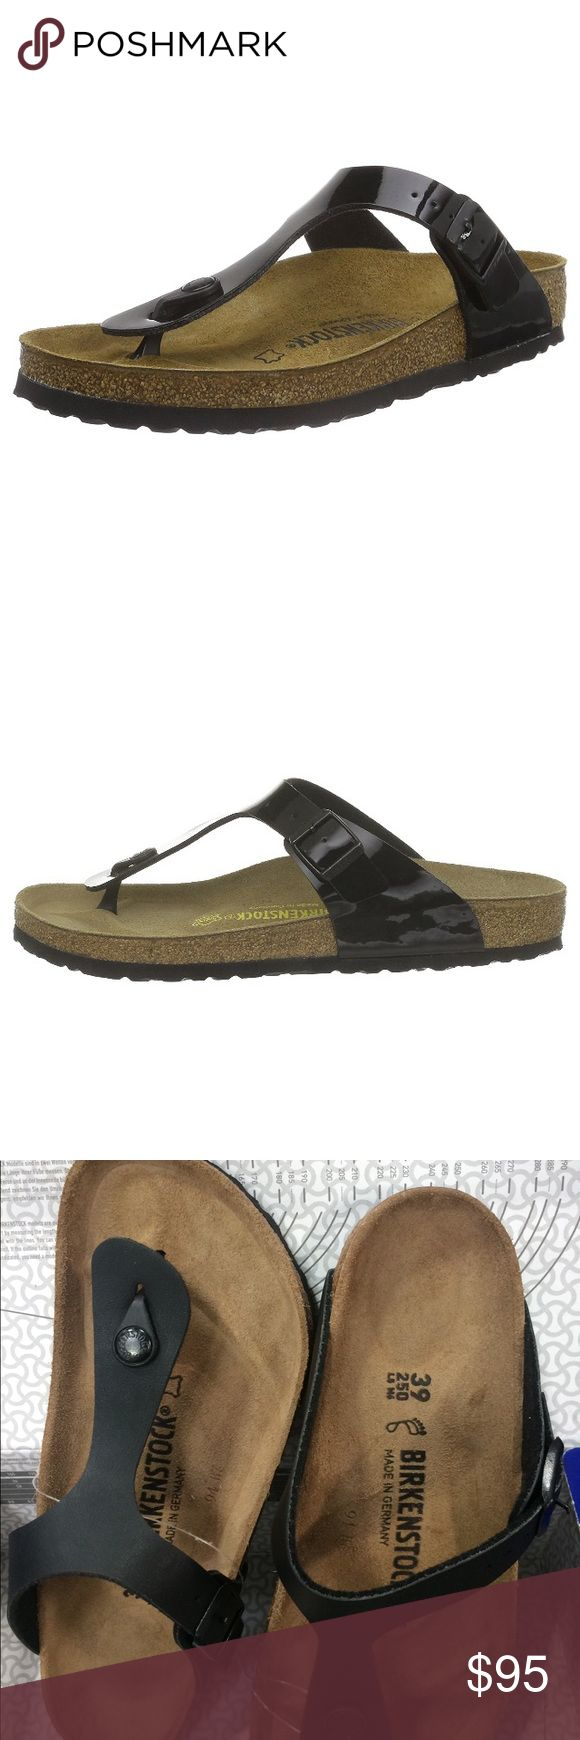 """✨NWT Birkenstock Sandals✨ NWT Birkenstock Sandals Gizeh  Imported Rubber sole Shaft measures approximately 1"""" from arch Heel measures approximately 0.75"""" Platform measures approximately 0.5"""" Thong sandal featuring rubber toe post with logoed medallion and adjustable vamp strap with buckle closure .Contoured footbed with cork midsole Birkenstock Shoes Sandals"""